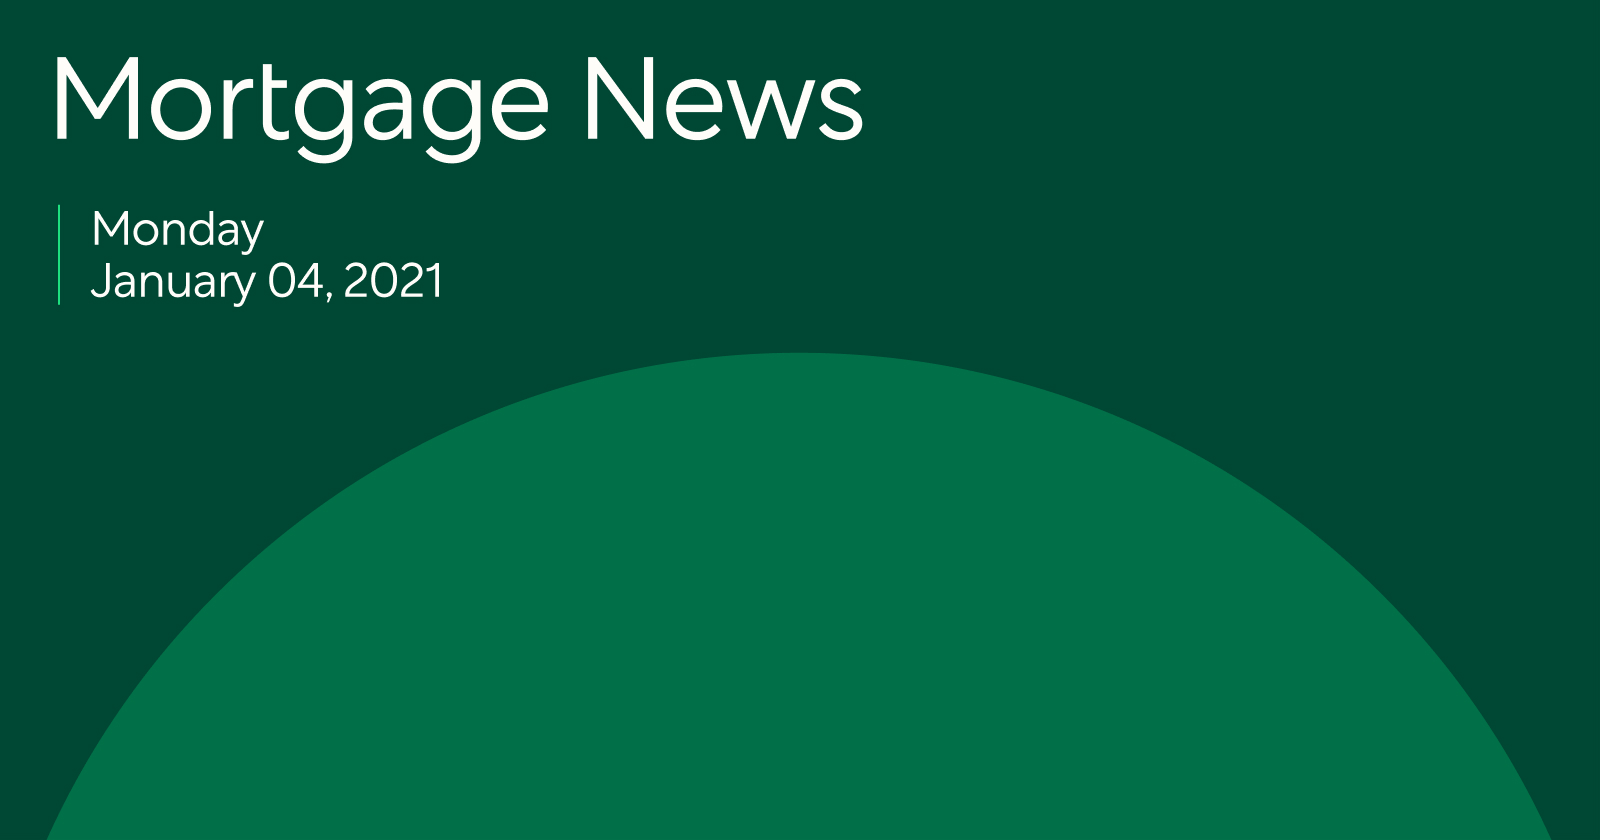 Mortgage News 1/04/2021: Why 2020 Was the Year of the Home